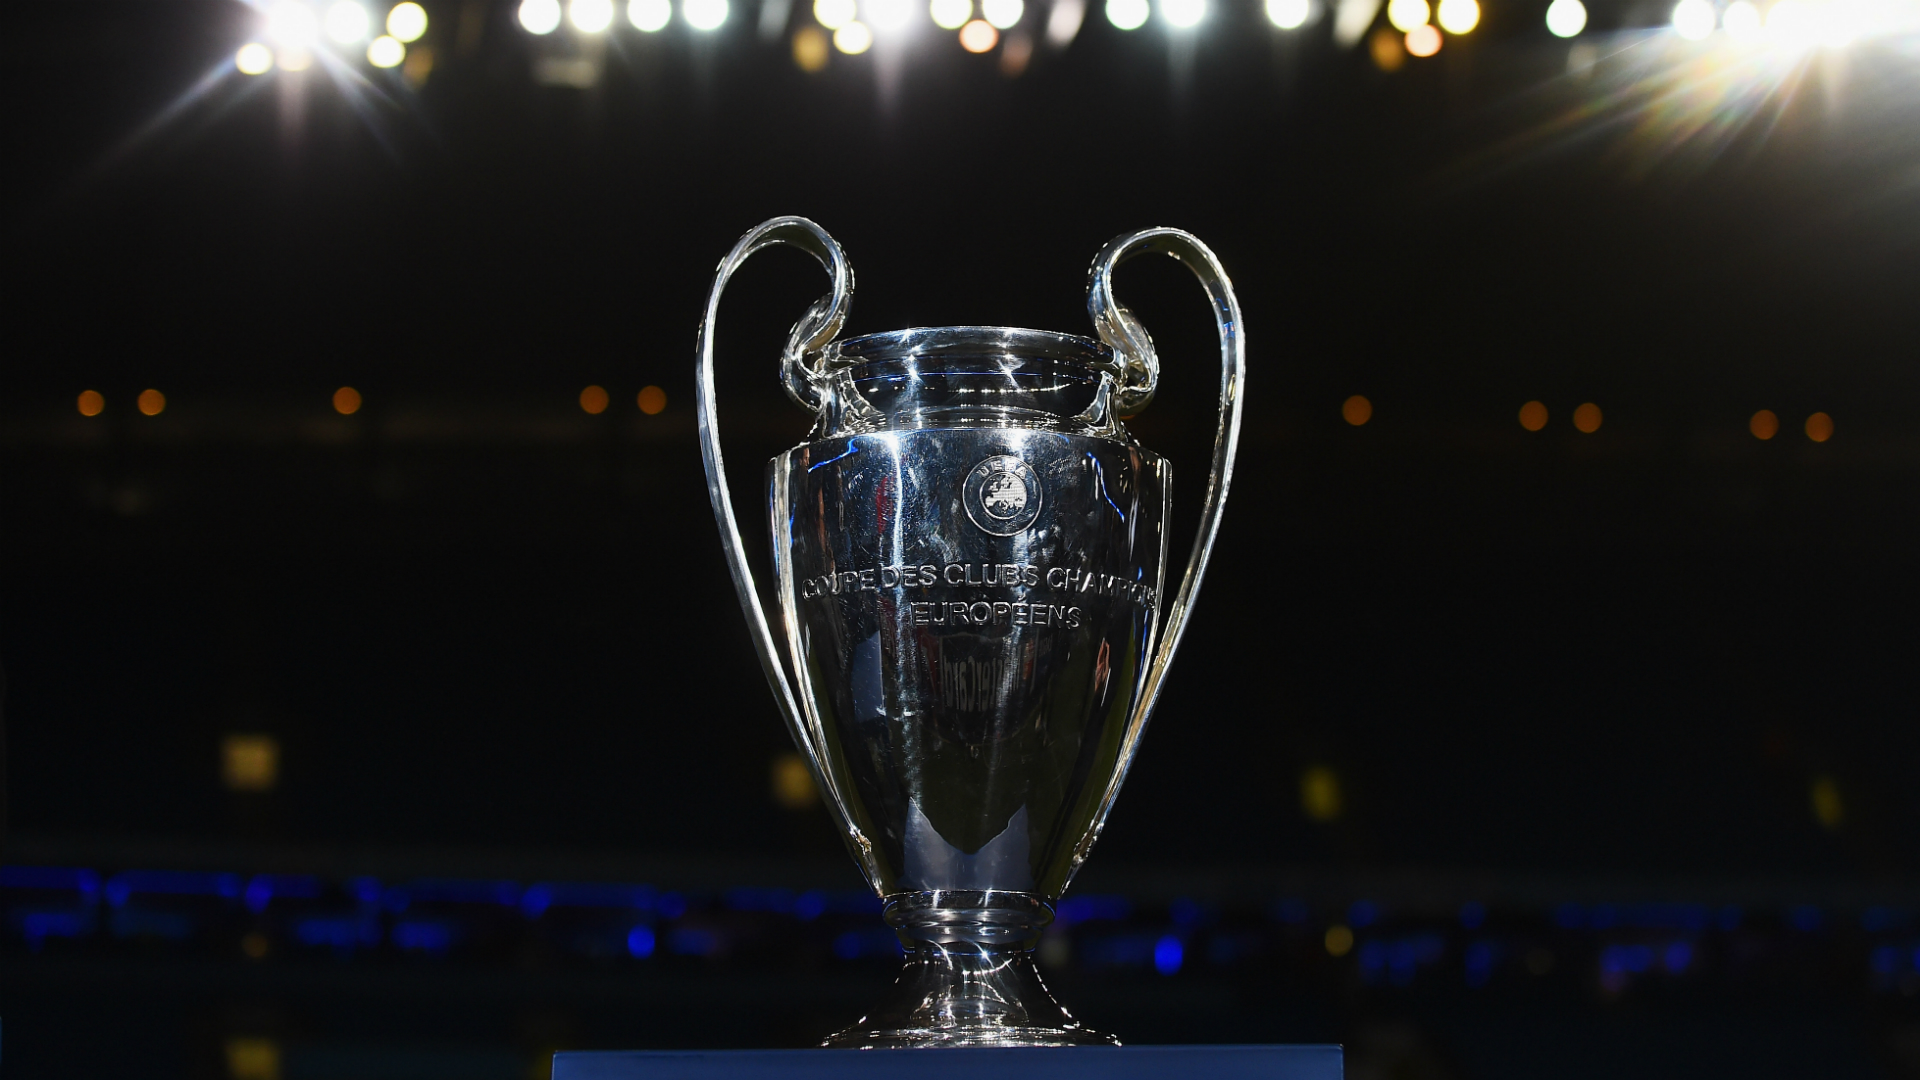 uefa champions league fixtures when are the last 16 games everything you need to know about the knockout rounds goal com uefa champions league fixtures when